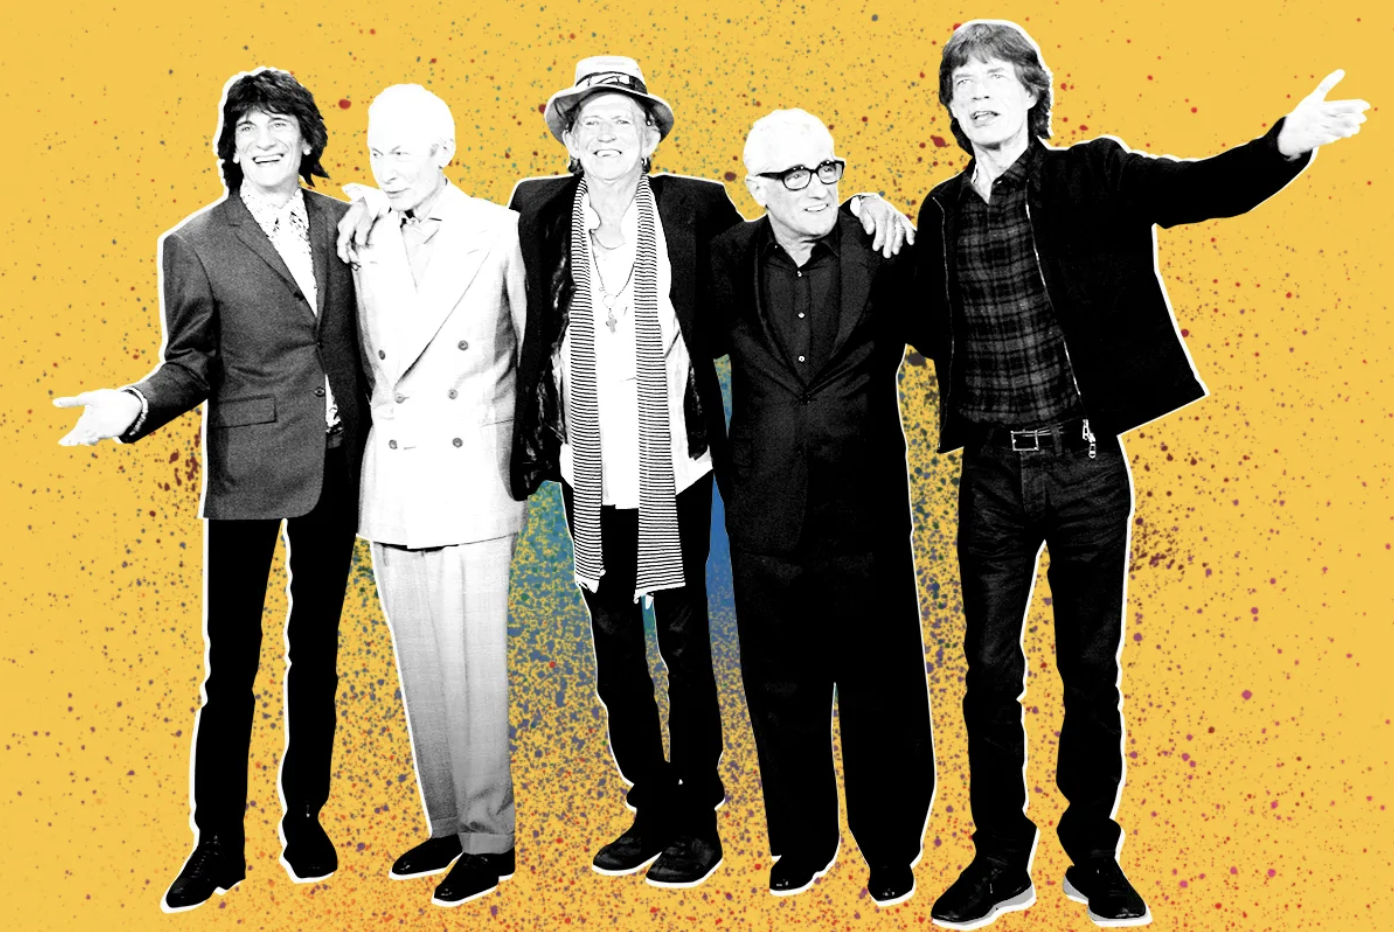 Scorsese's films feature his love for The Rolling Stones